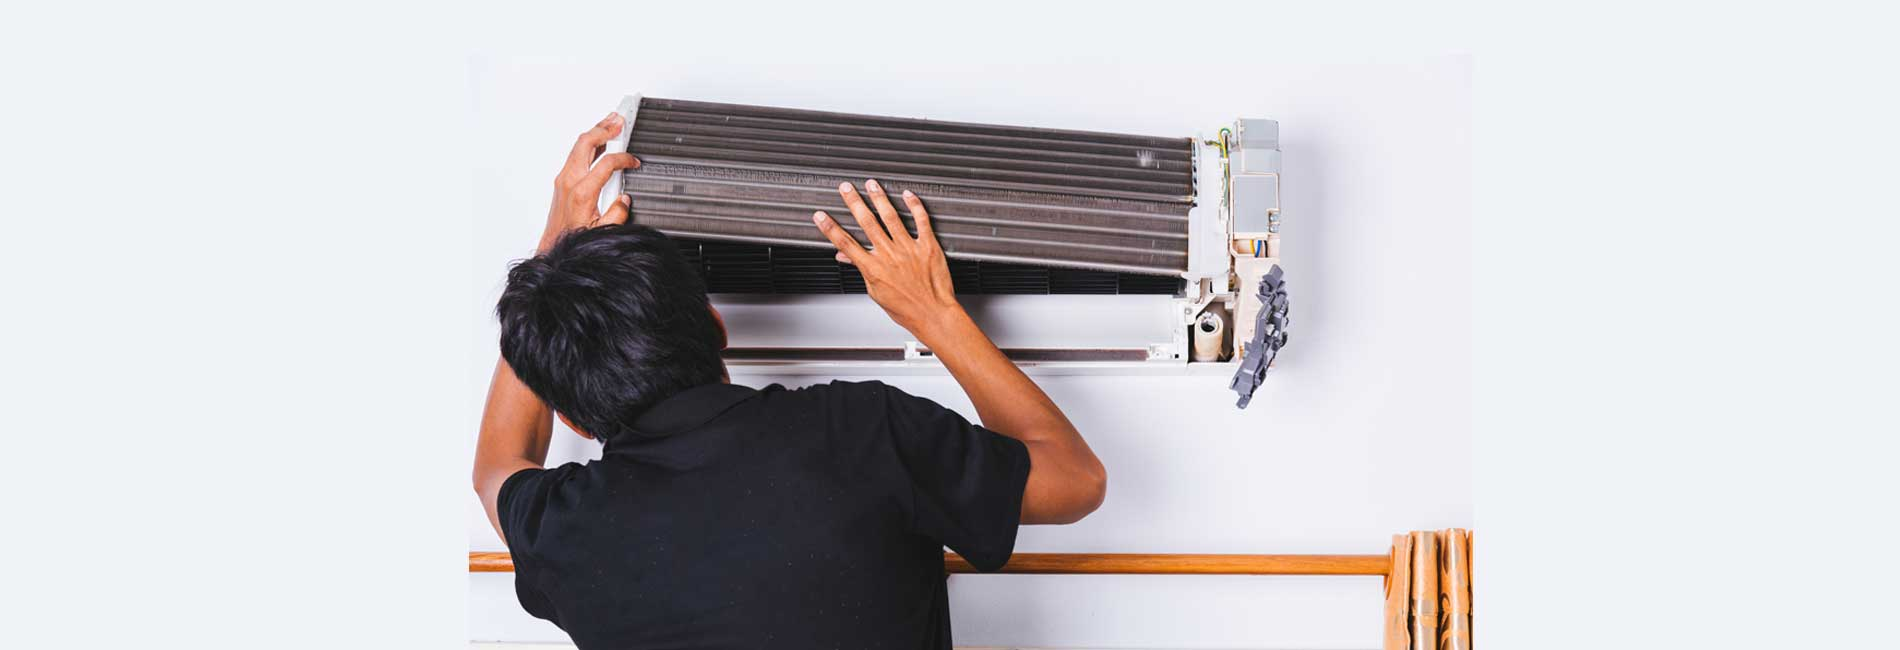 Panasonic AC Uninstallation and Installation in Sholavaram